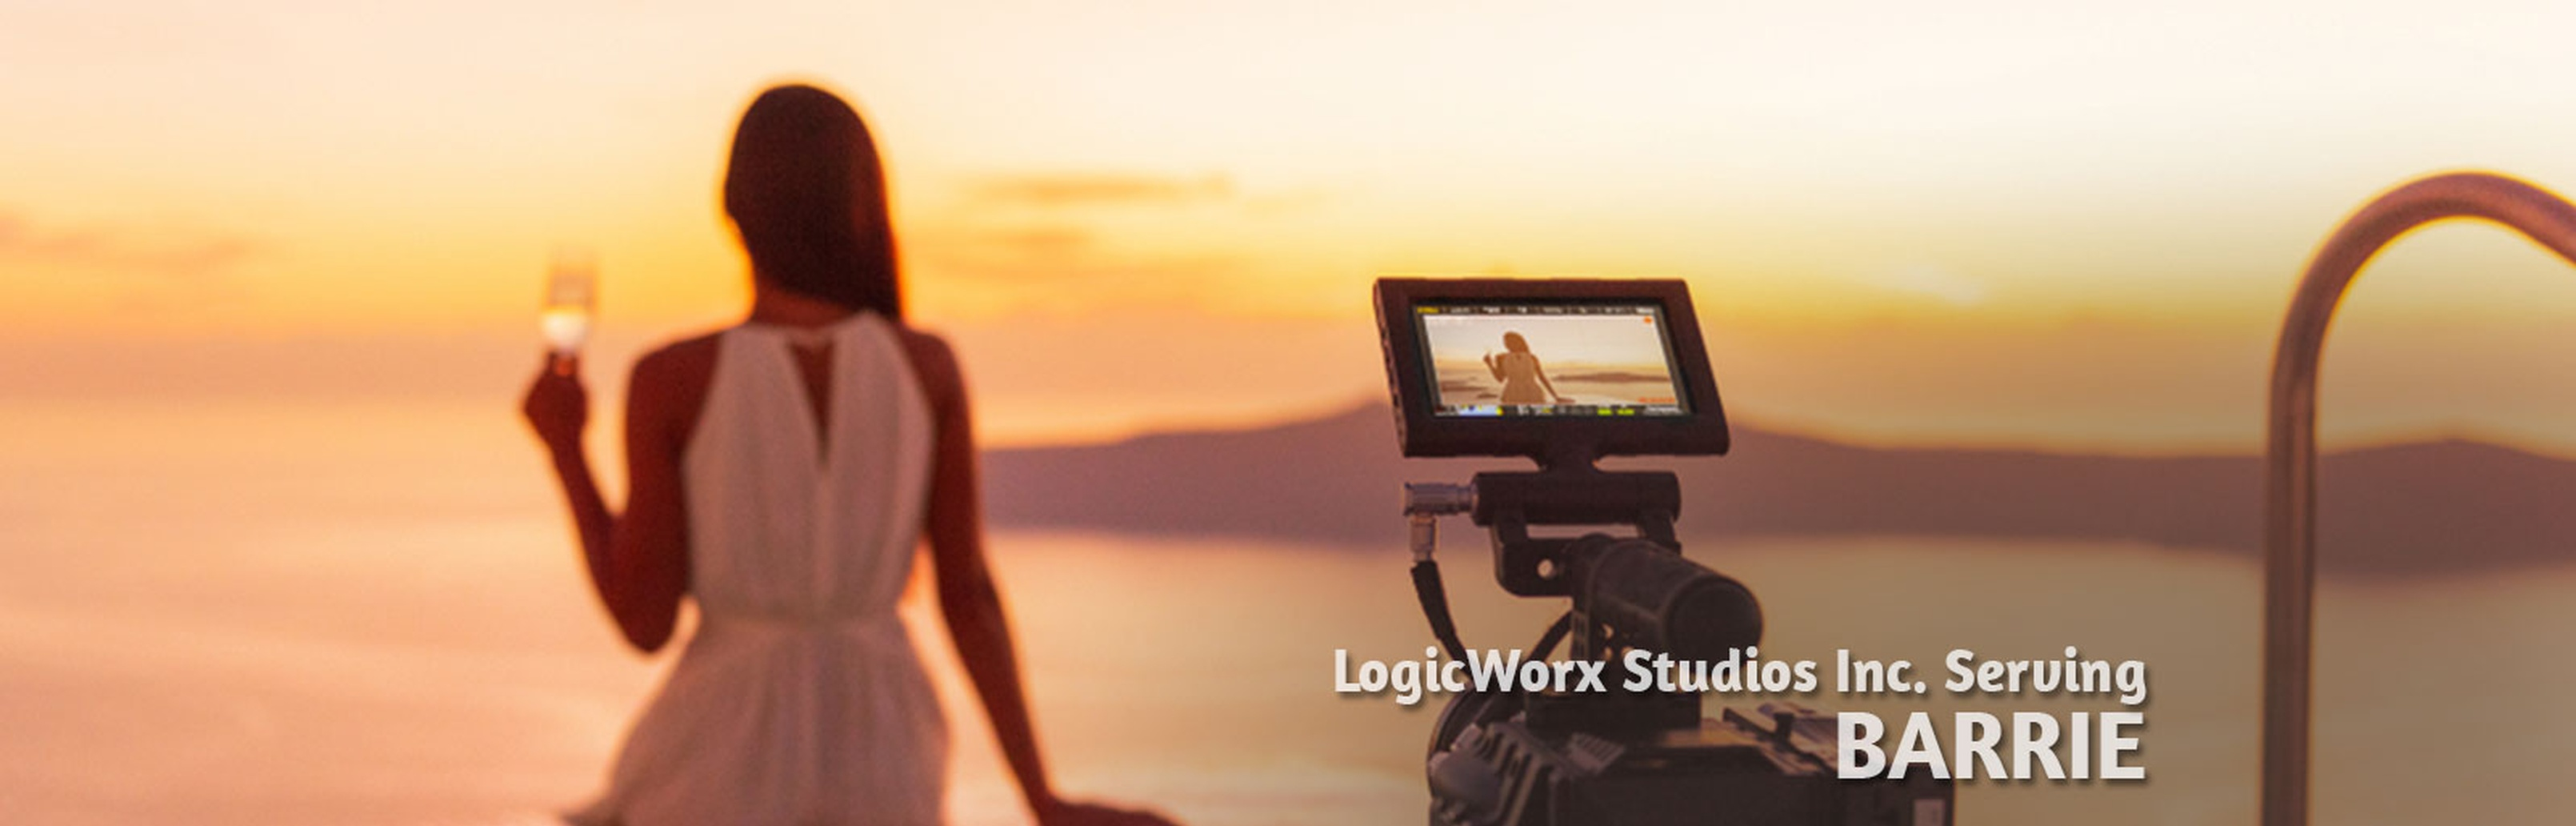 LogicWorx Studios Inc. Serving Barrie